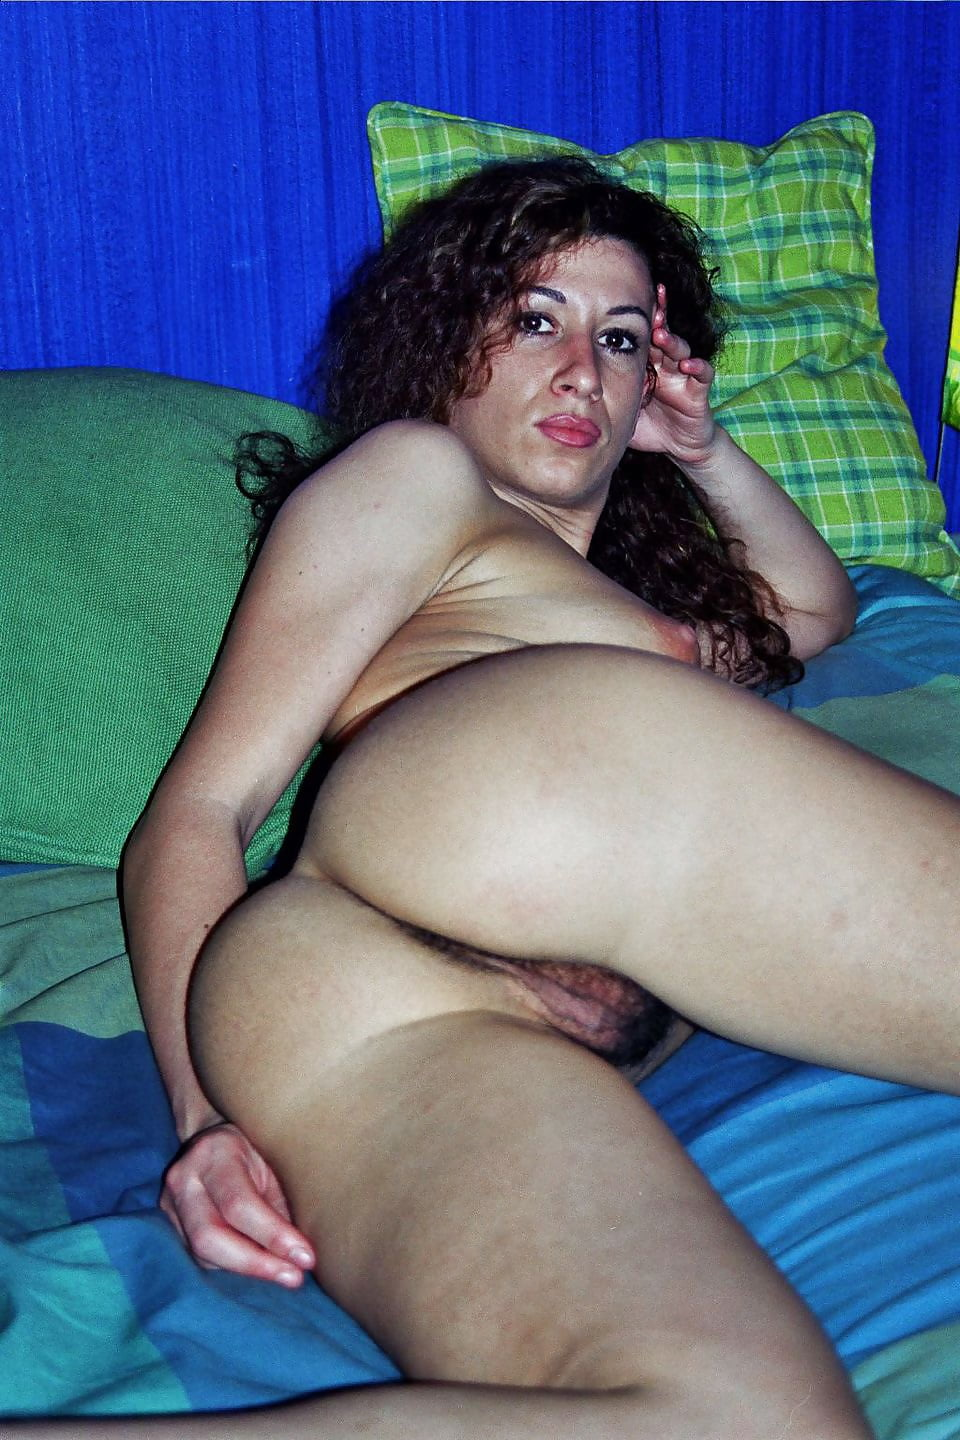 Mature hairy latina nudes, sexiest old dudes naked